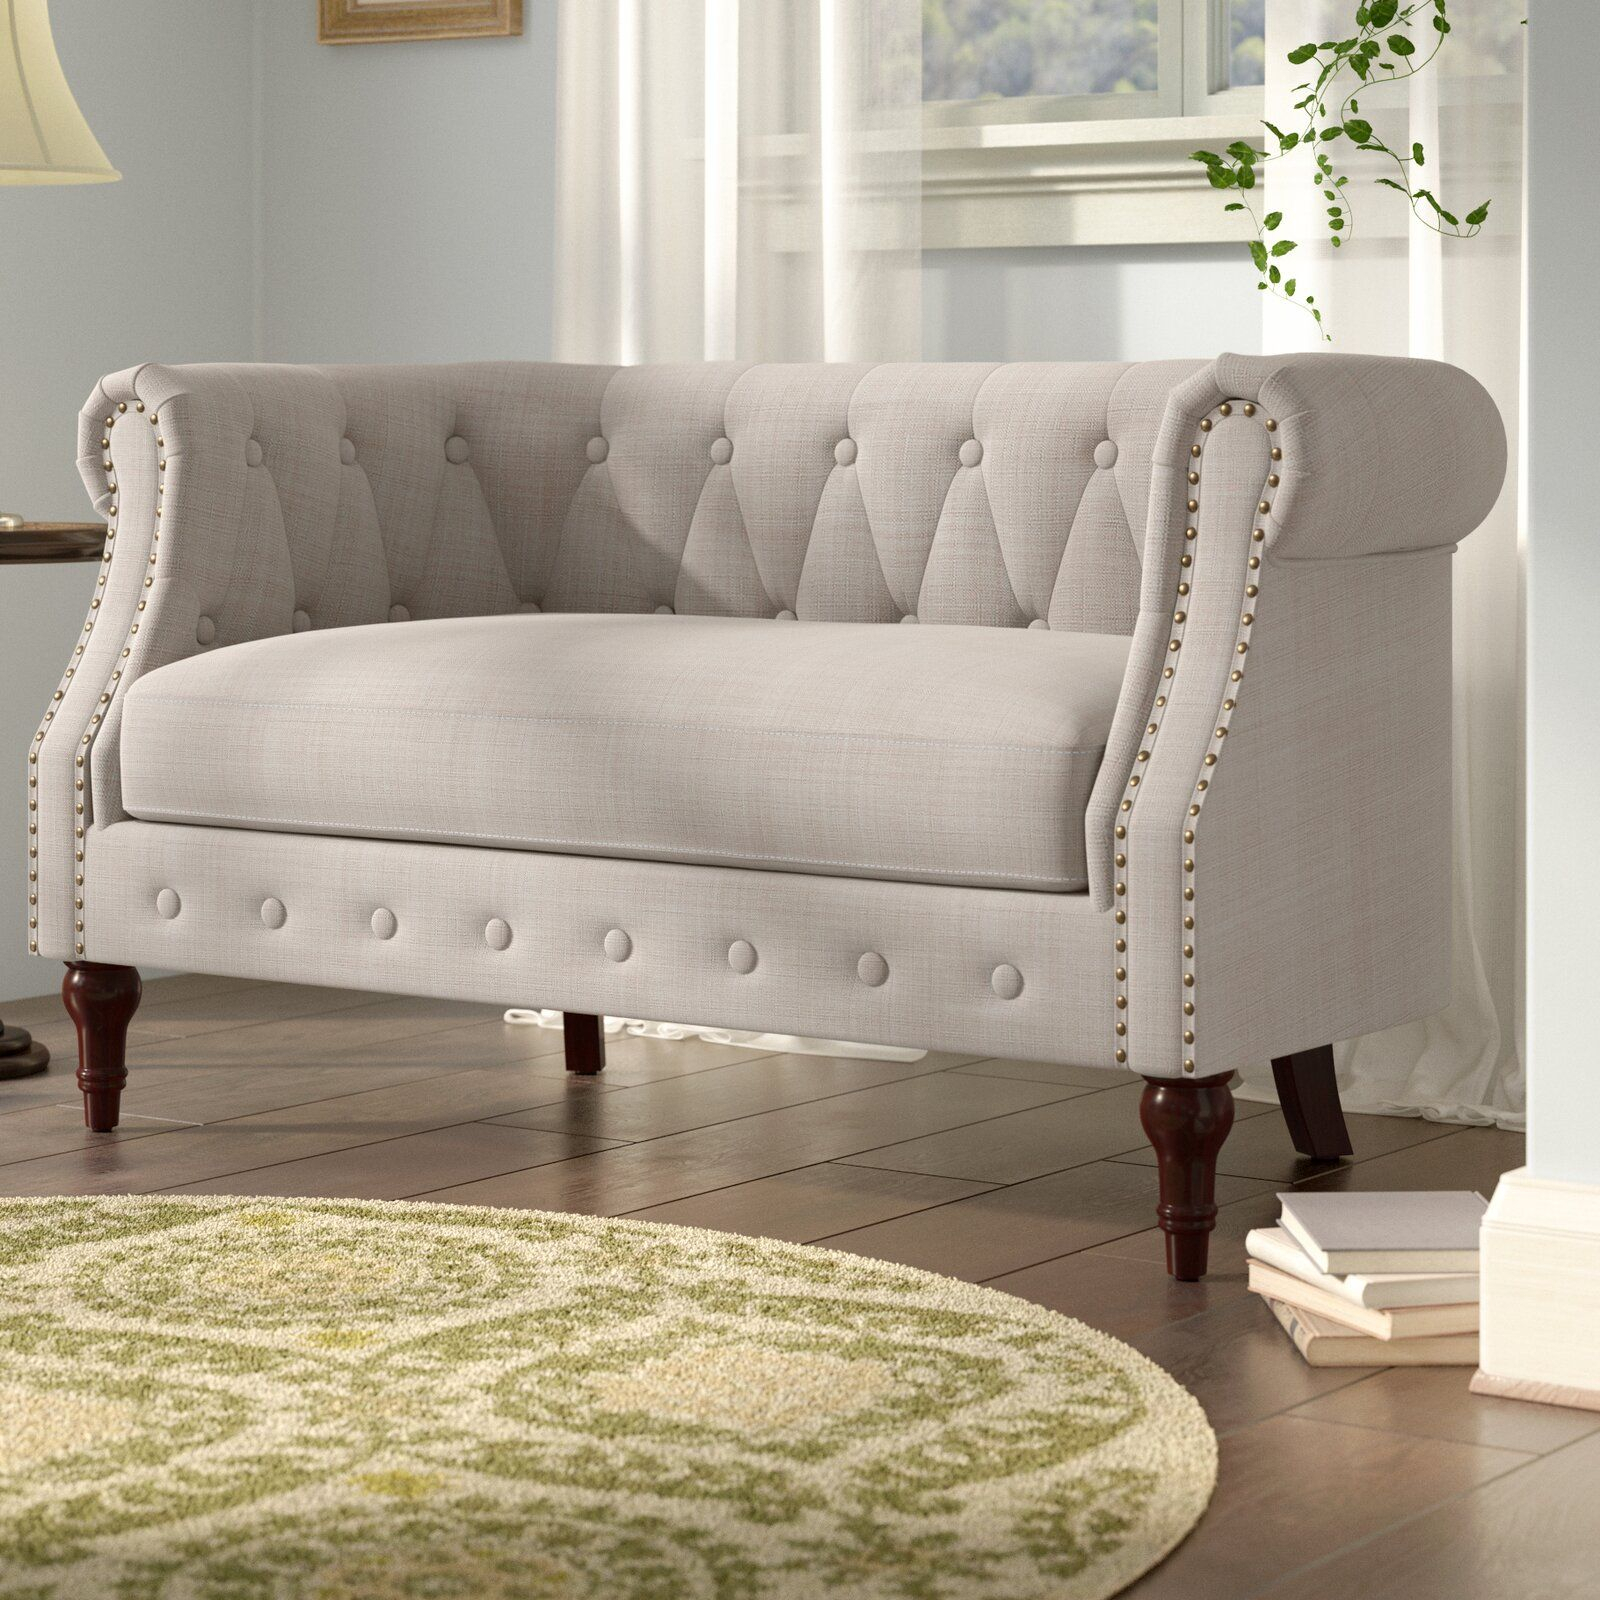 Pinalexa On Home Decor Furniture In 2020 | Love Seat With Regard To Kjellfrid Chesterfield Chairs (View 5 of 15)